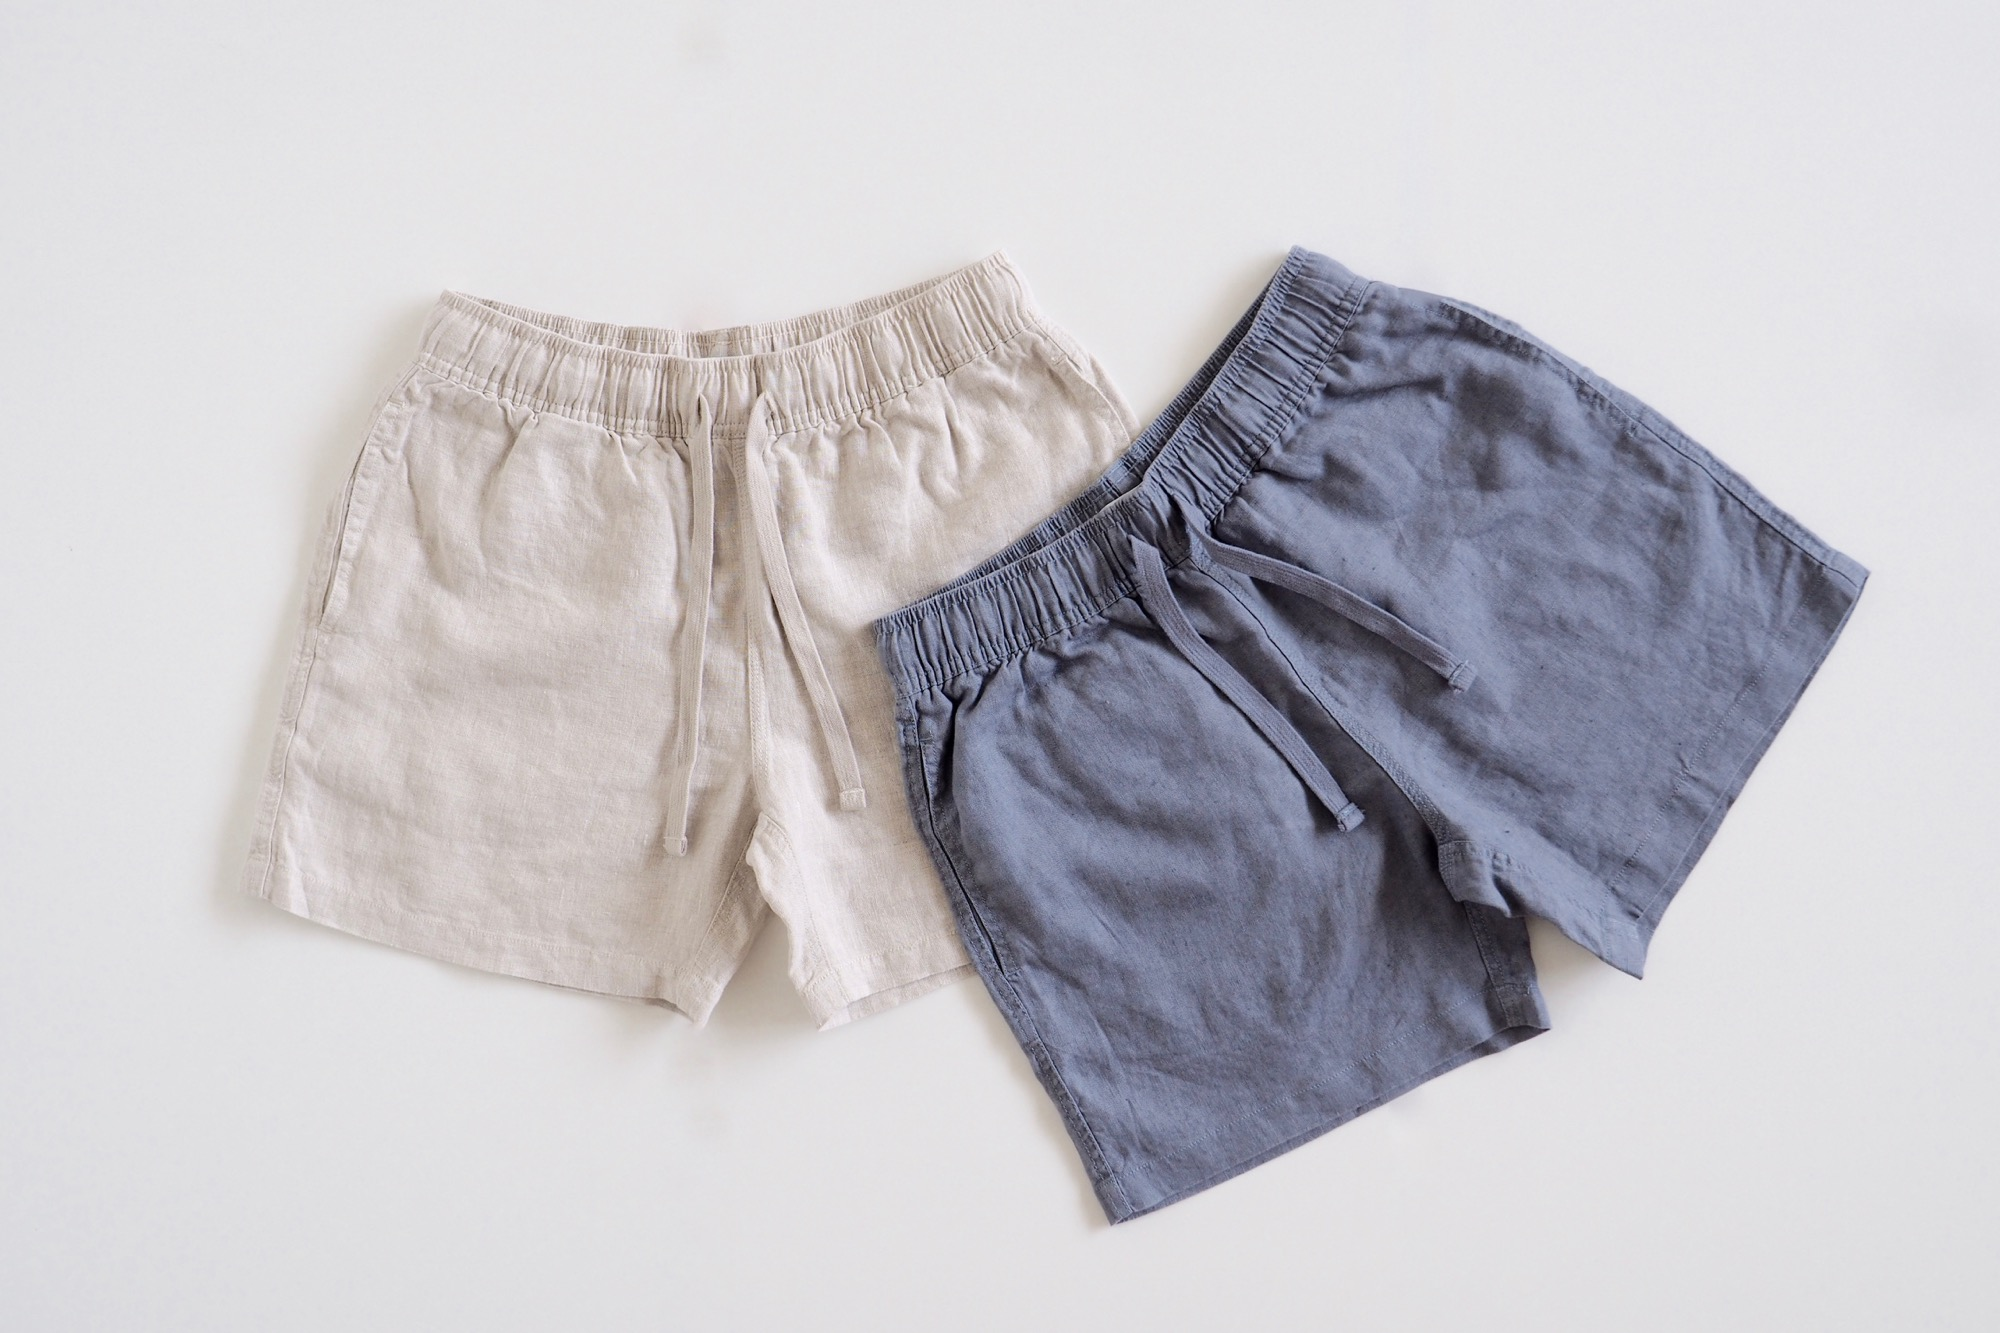 Best Men's Shorts For The Warmer Weather